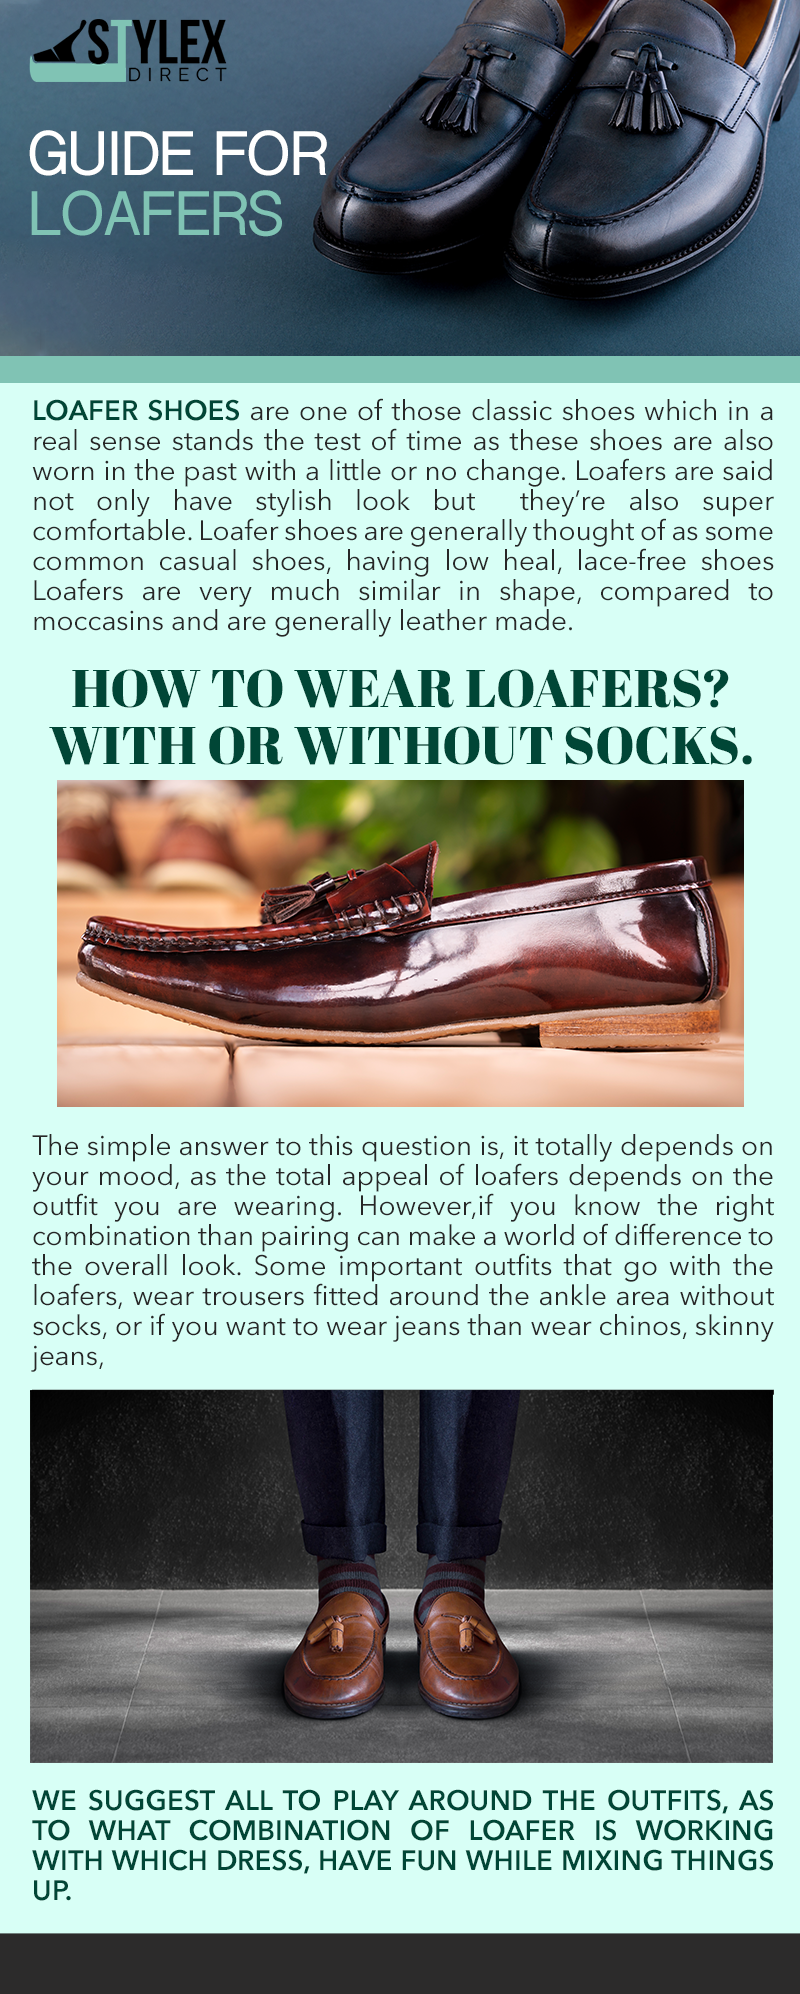 Guid to Loafers